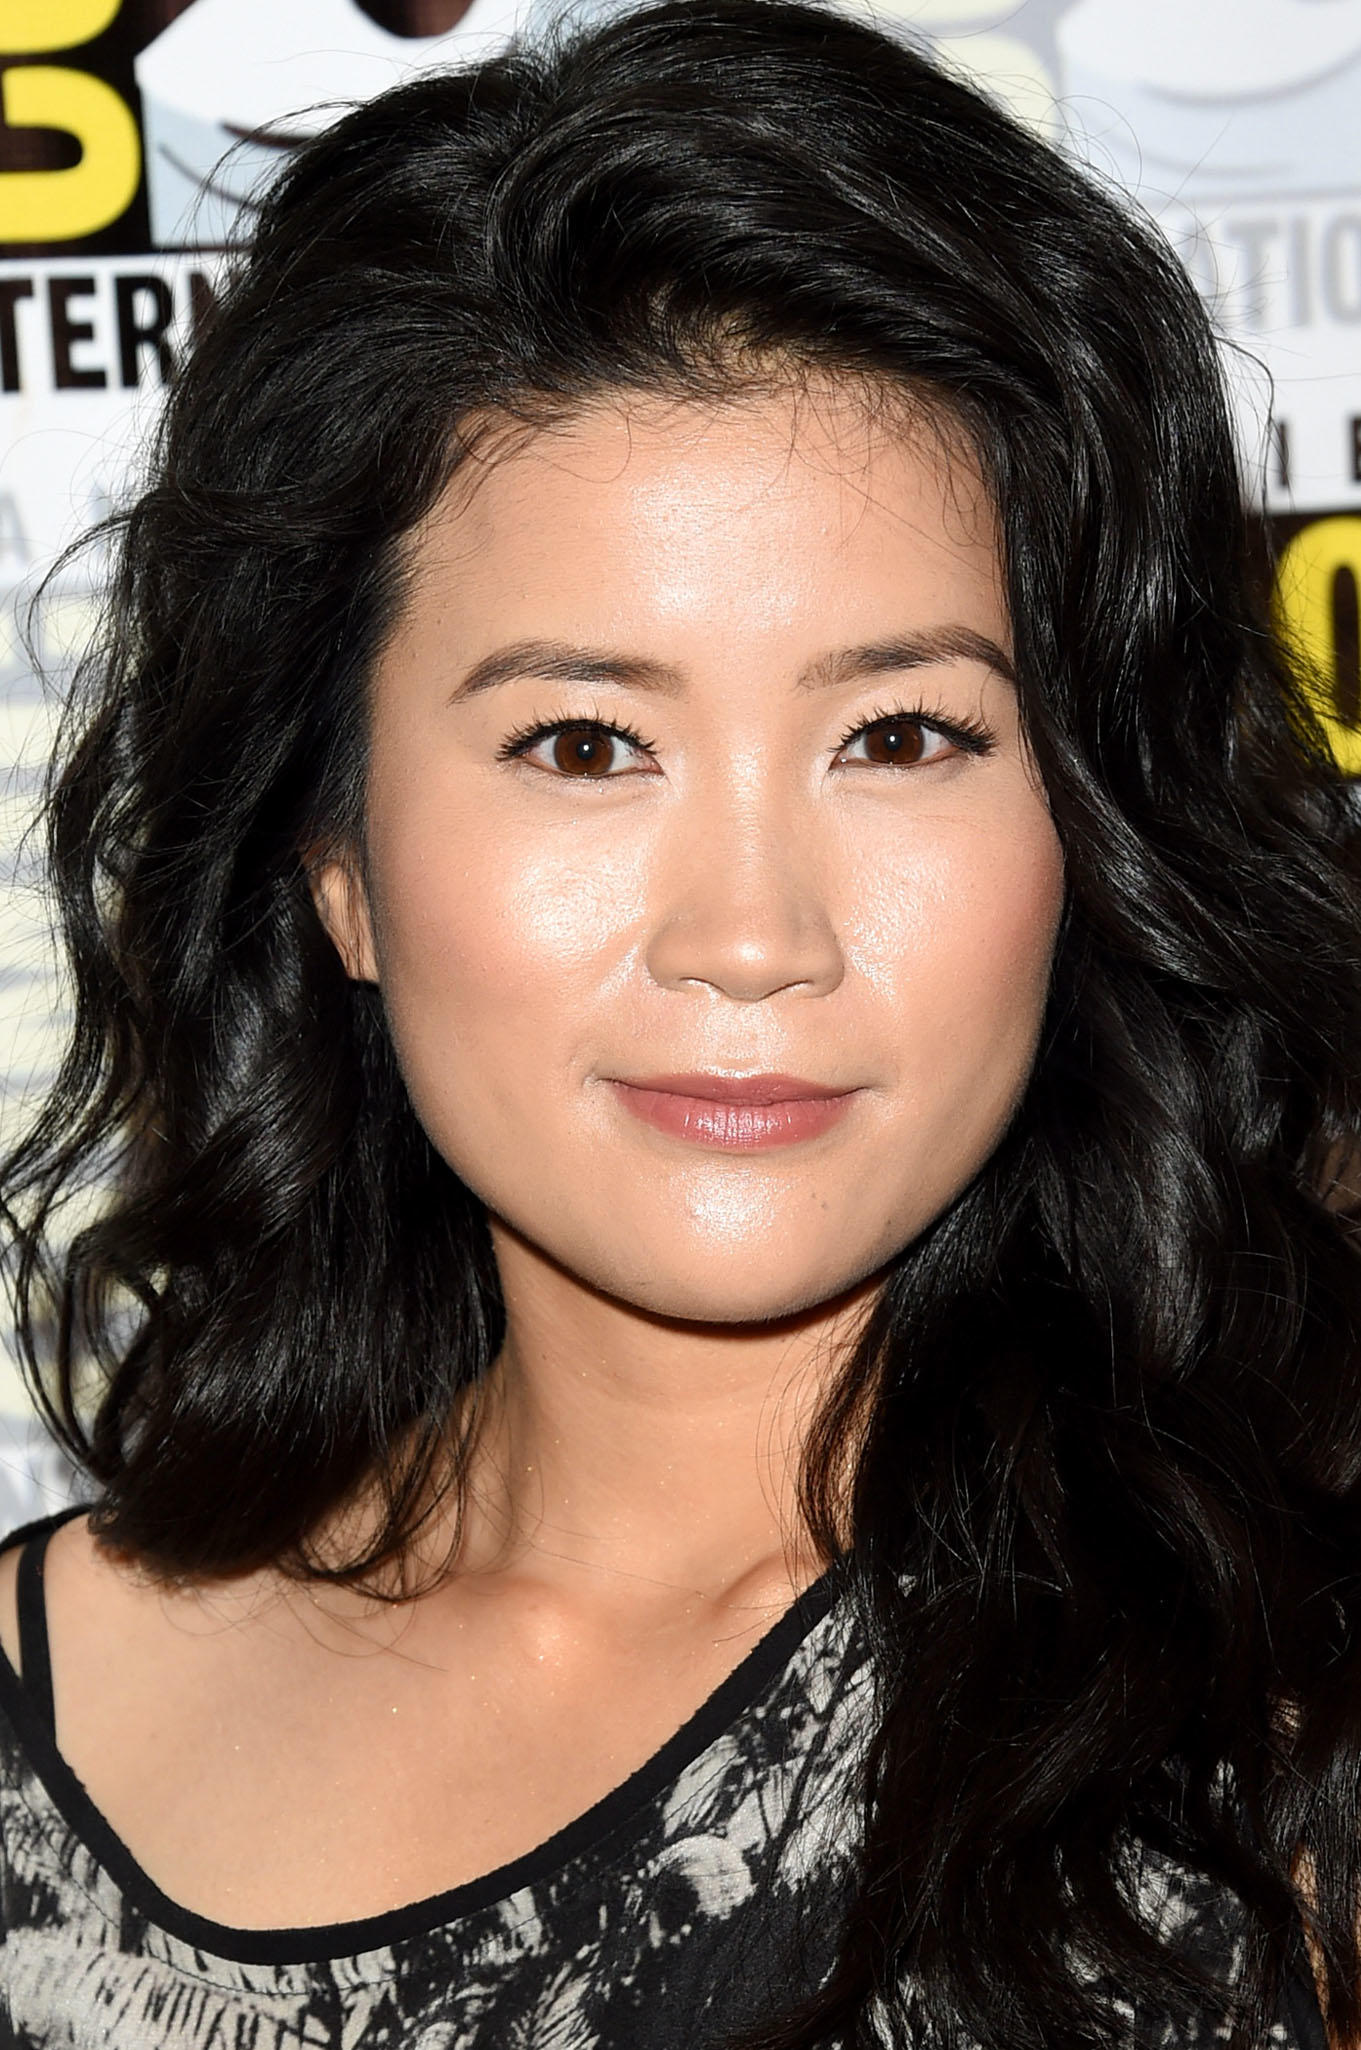 Jadyn Wong during Comic-Con International 2015 in San Diego, CA.